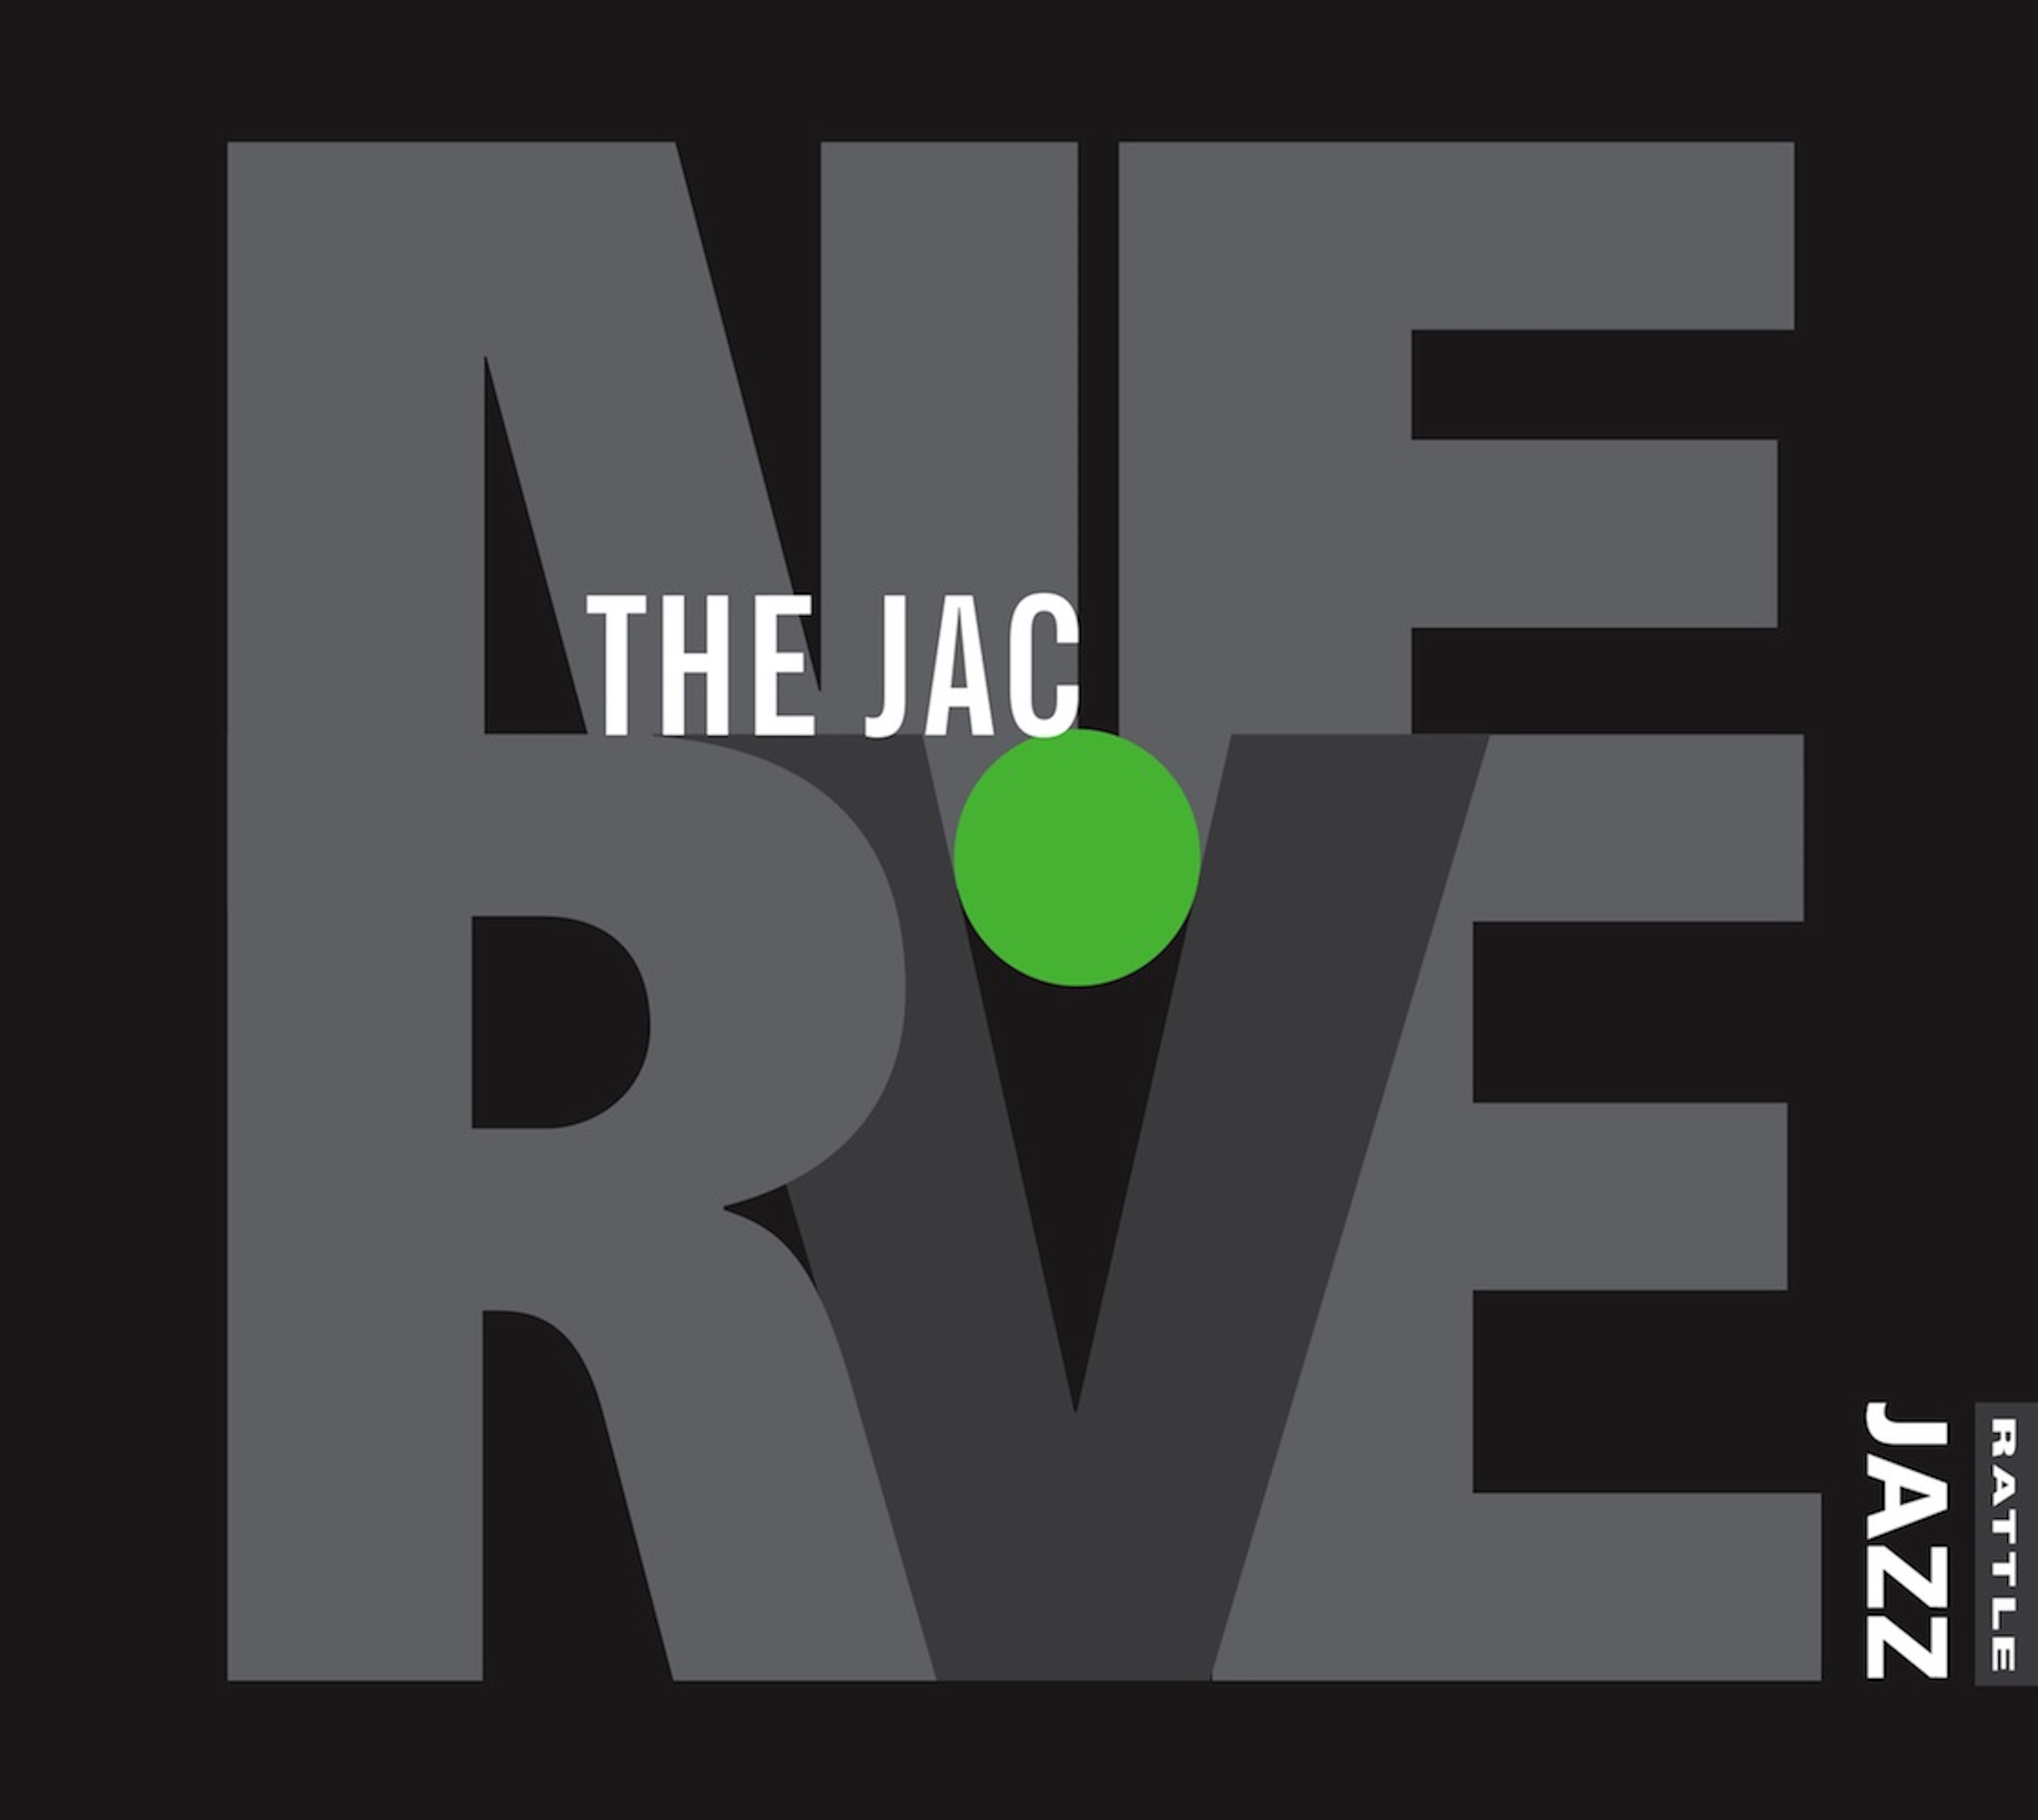 The Jac | Nerve - downloadable MP3 ALBUM